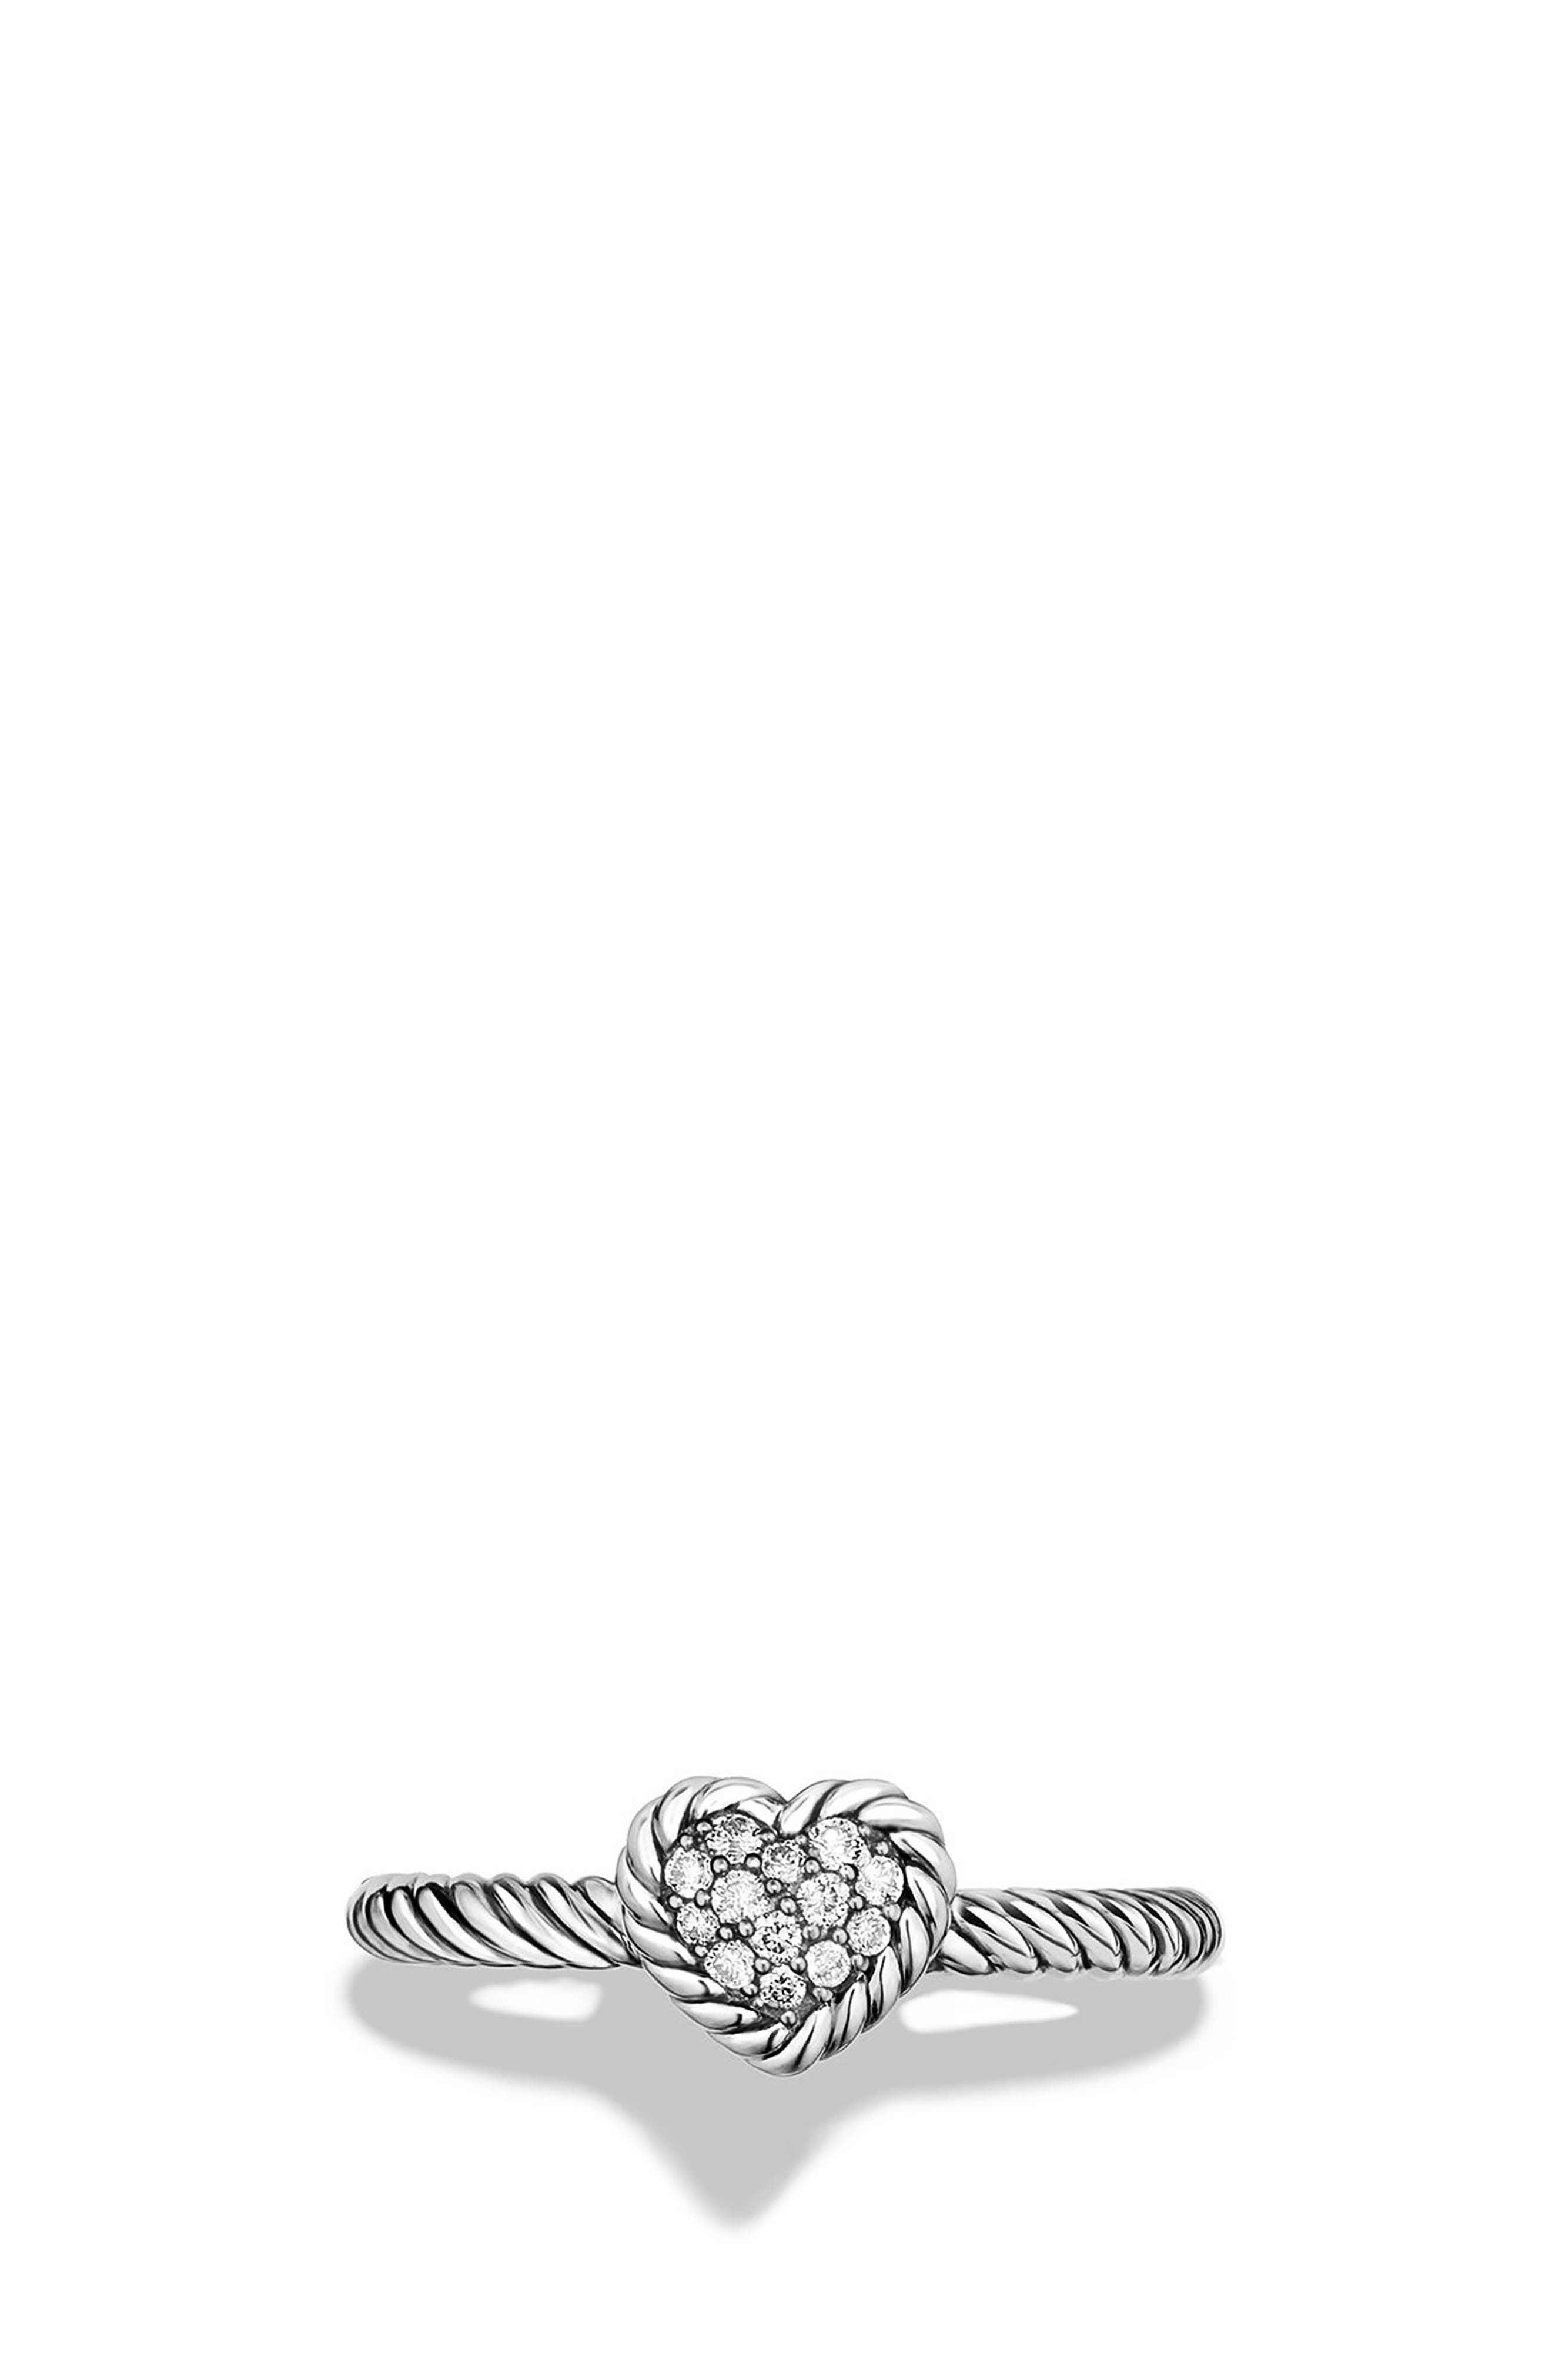 'Châtelaine' Heart Ring with Diamonds,                             Alternate thumbnail 4, color,                             SILVER